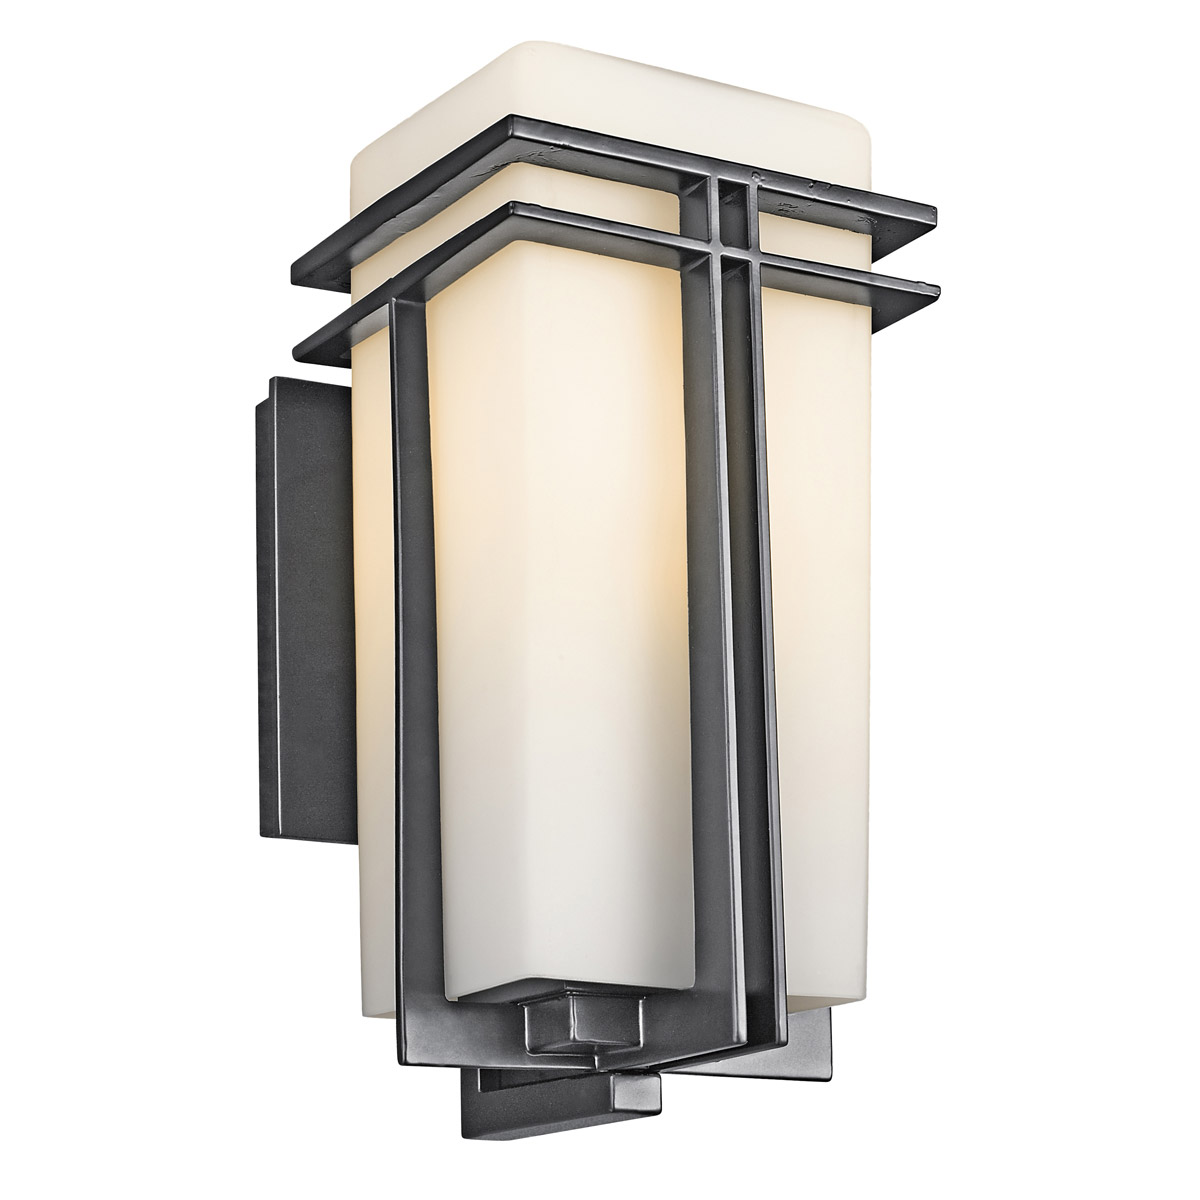 Kichler 49201bk tremillo outdoor wall fixture for Outdoor home lighting fixtures